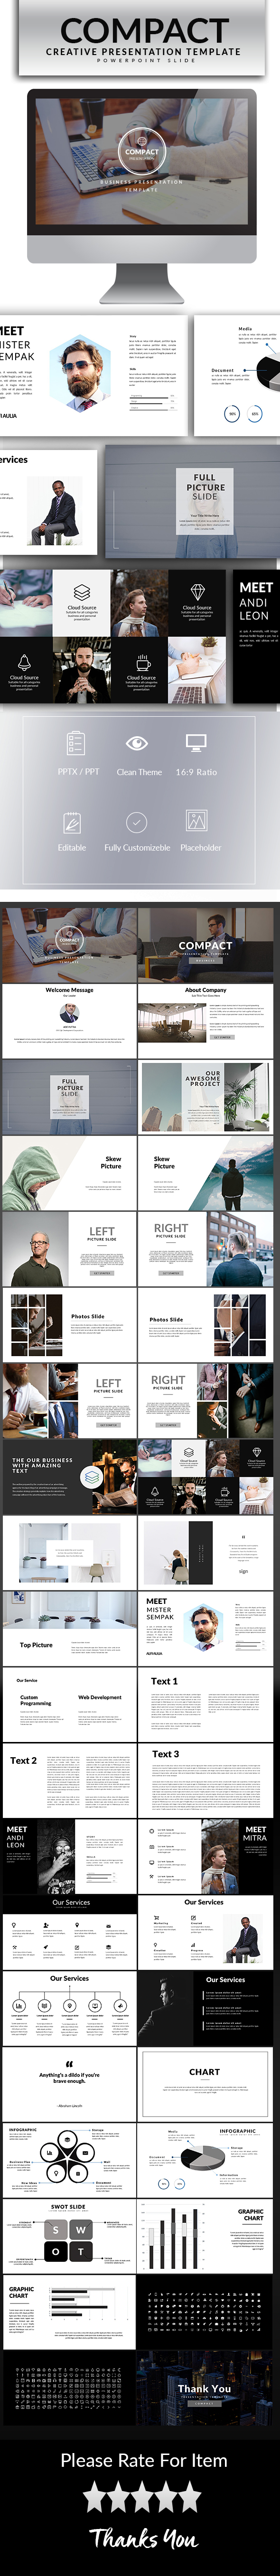 Compact Powerpoint Template - PowerPoint Templates Presentation Templates